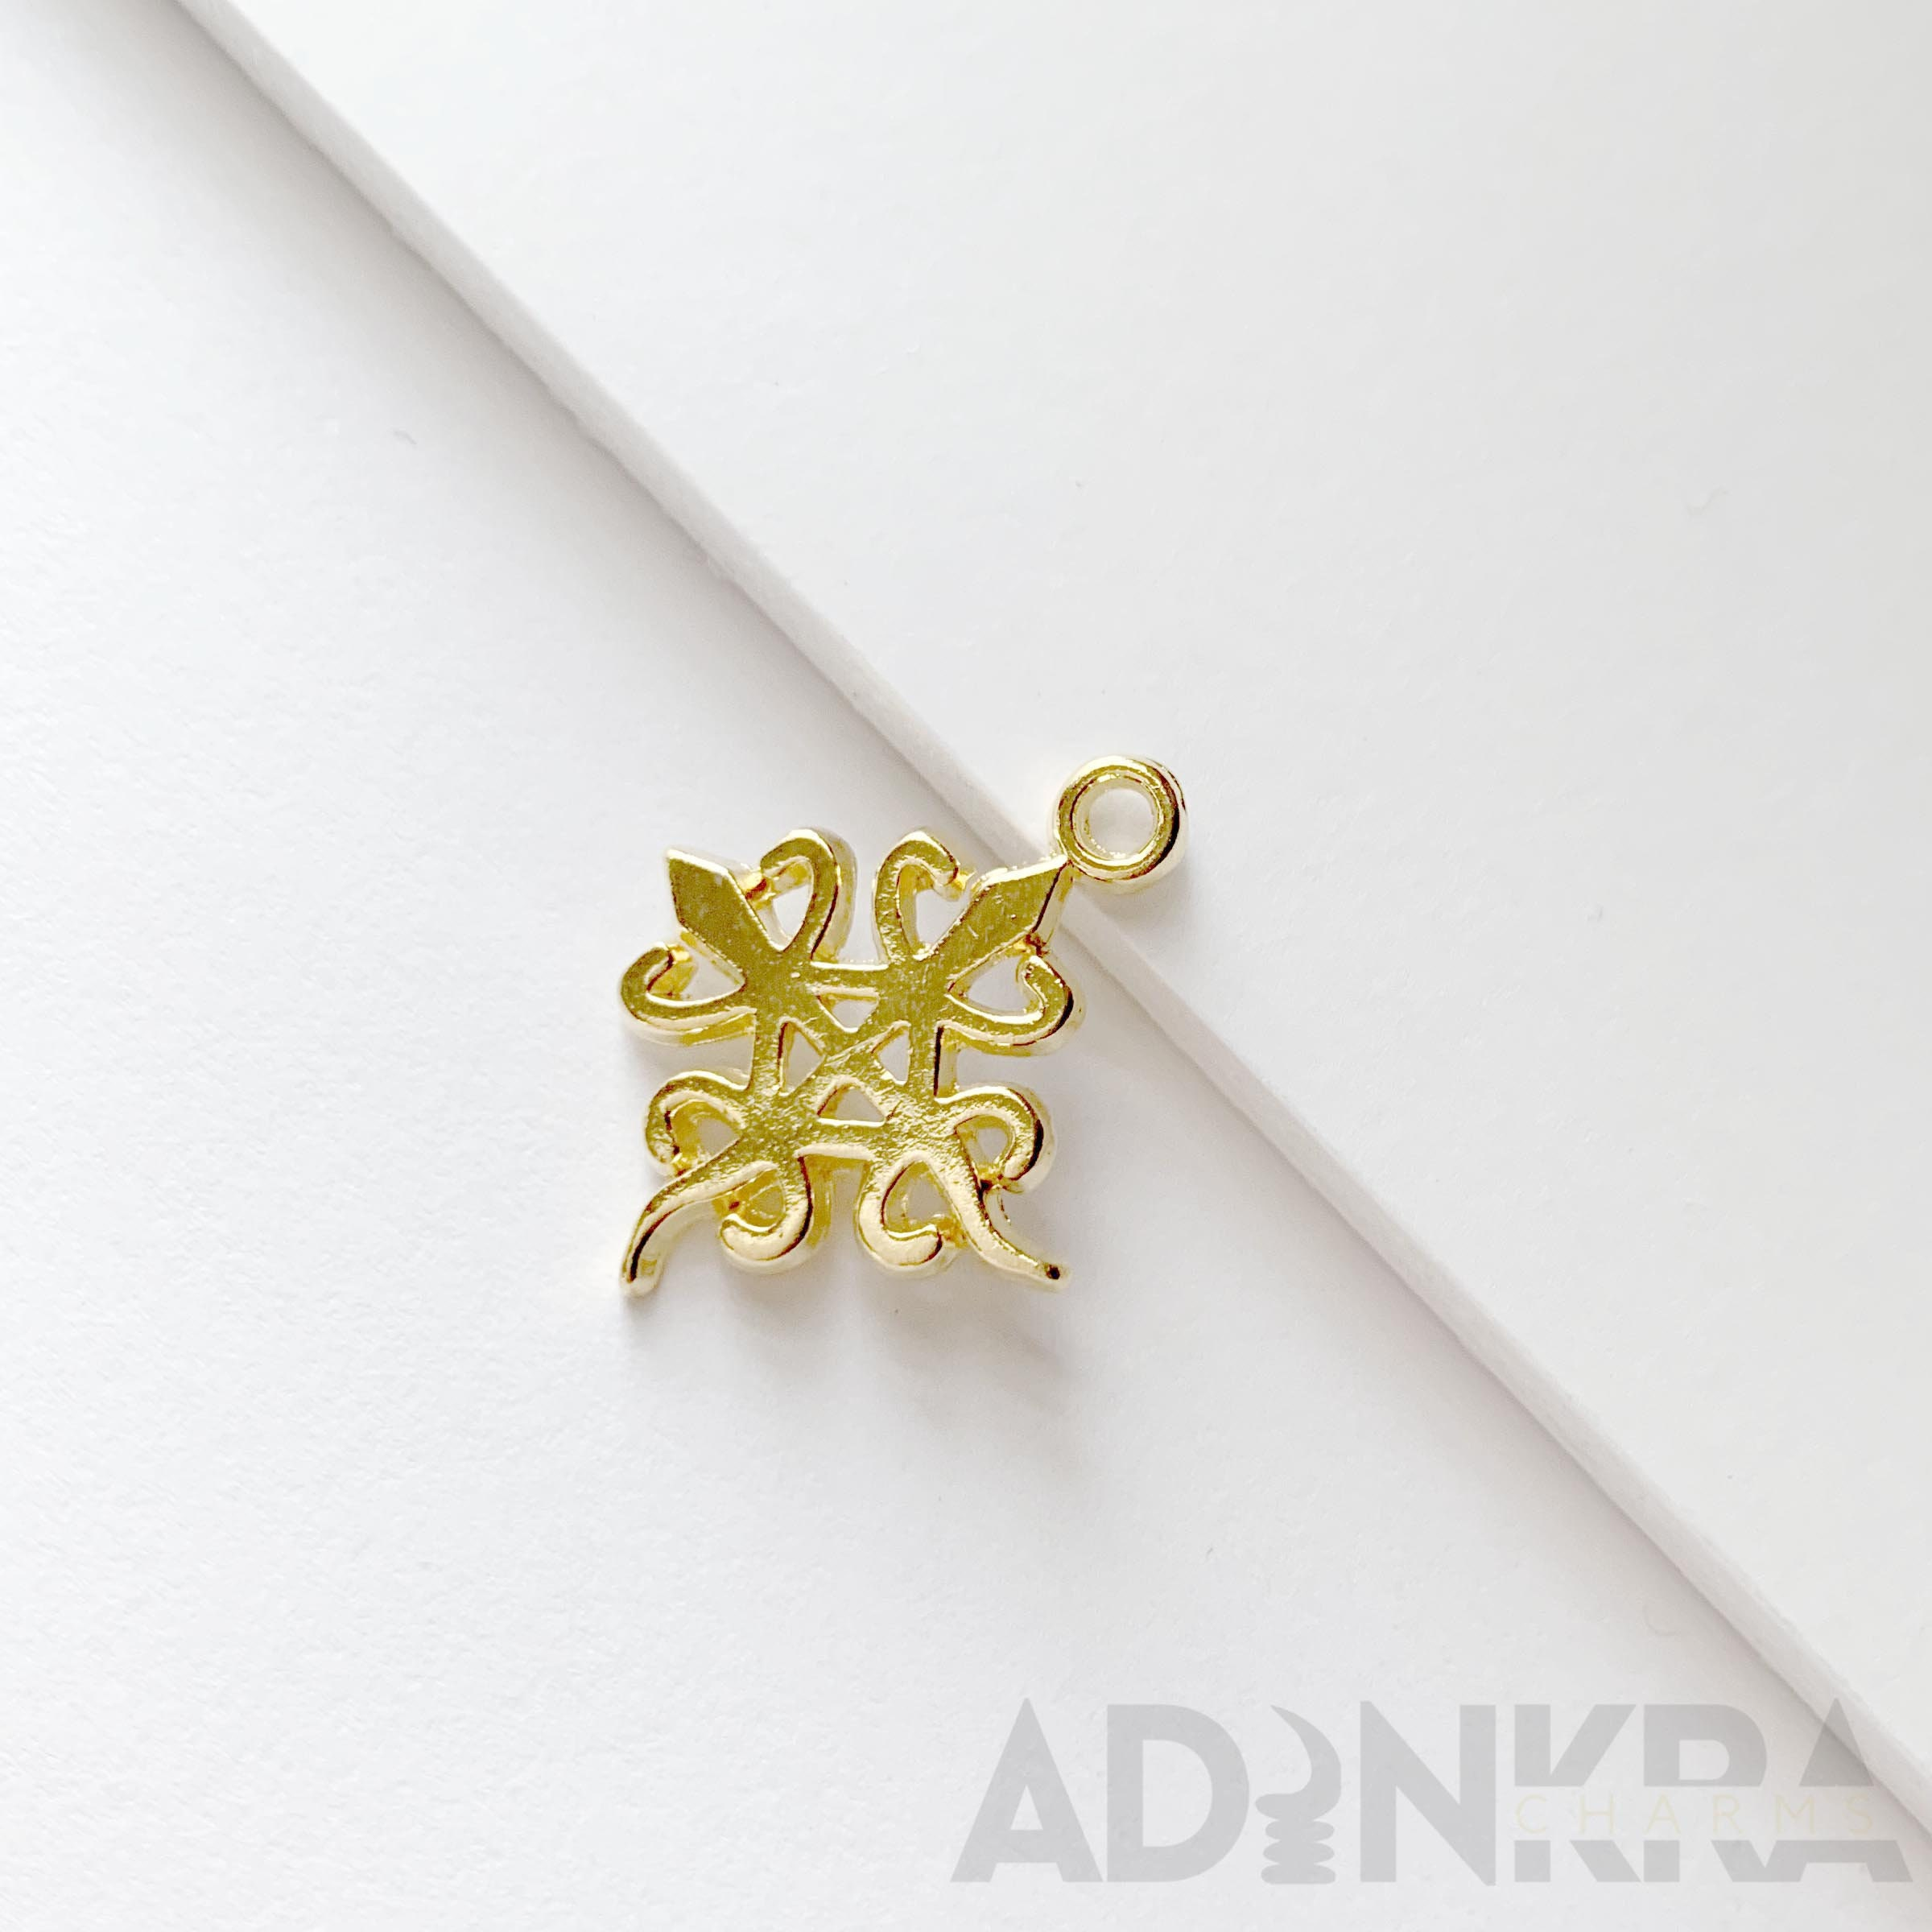 Silver  Gold plated Adinkra Charms